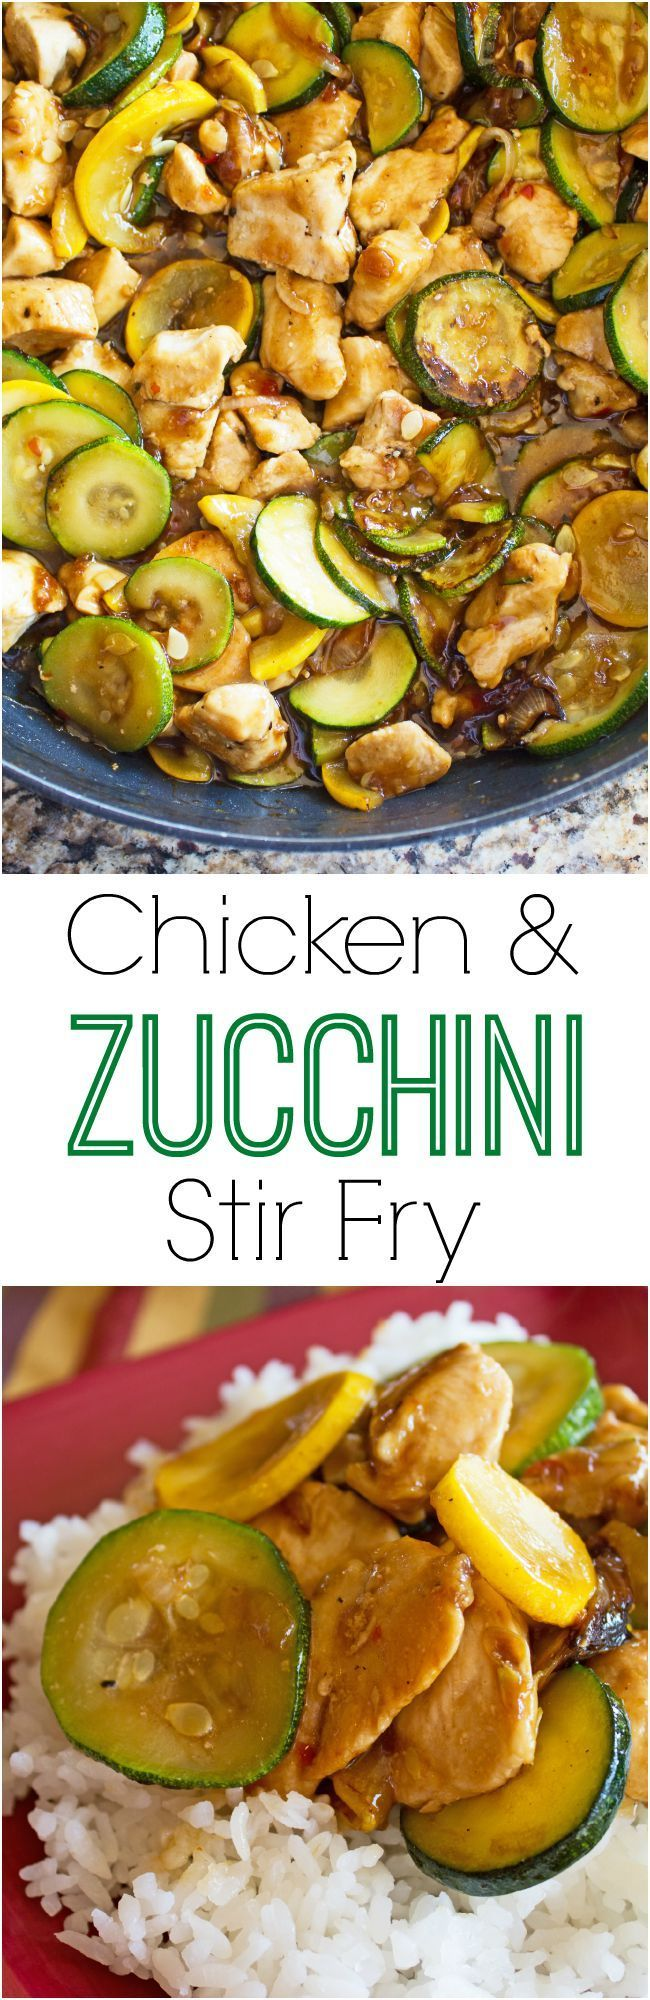 Chicken and Zucchini Stir Fry